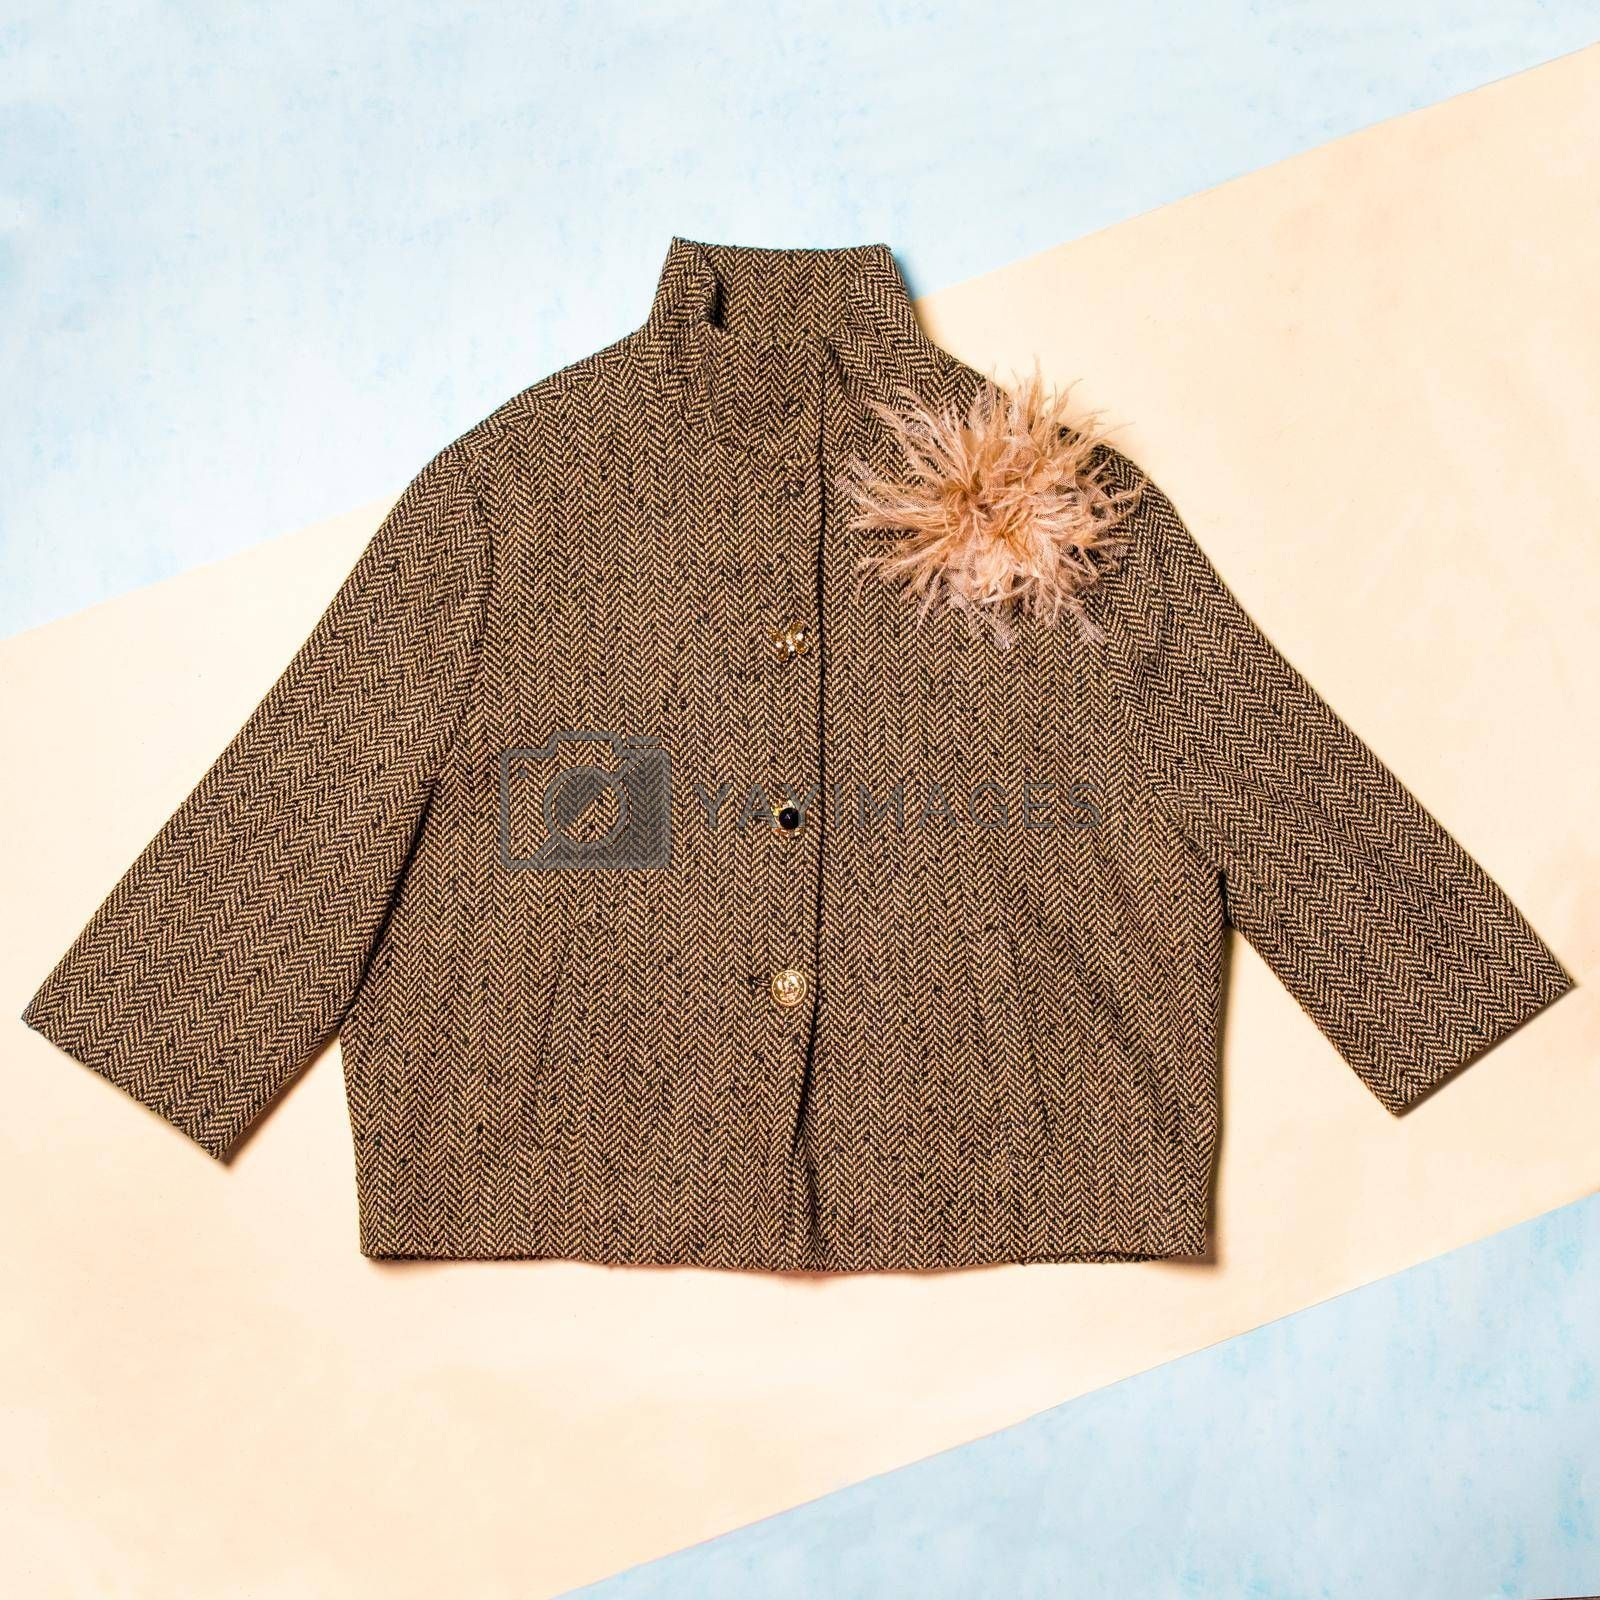 Brown color woman autumn coat isolated